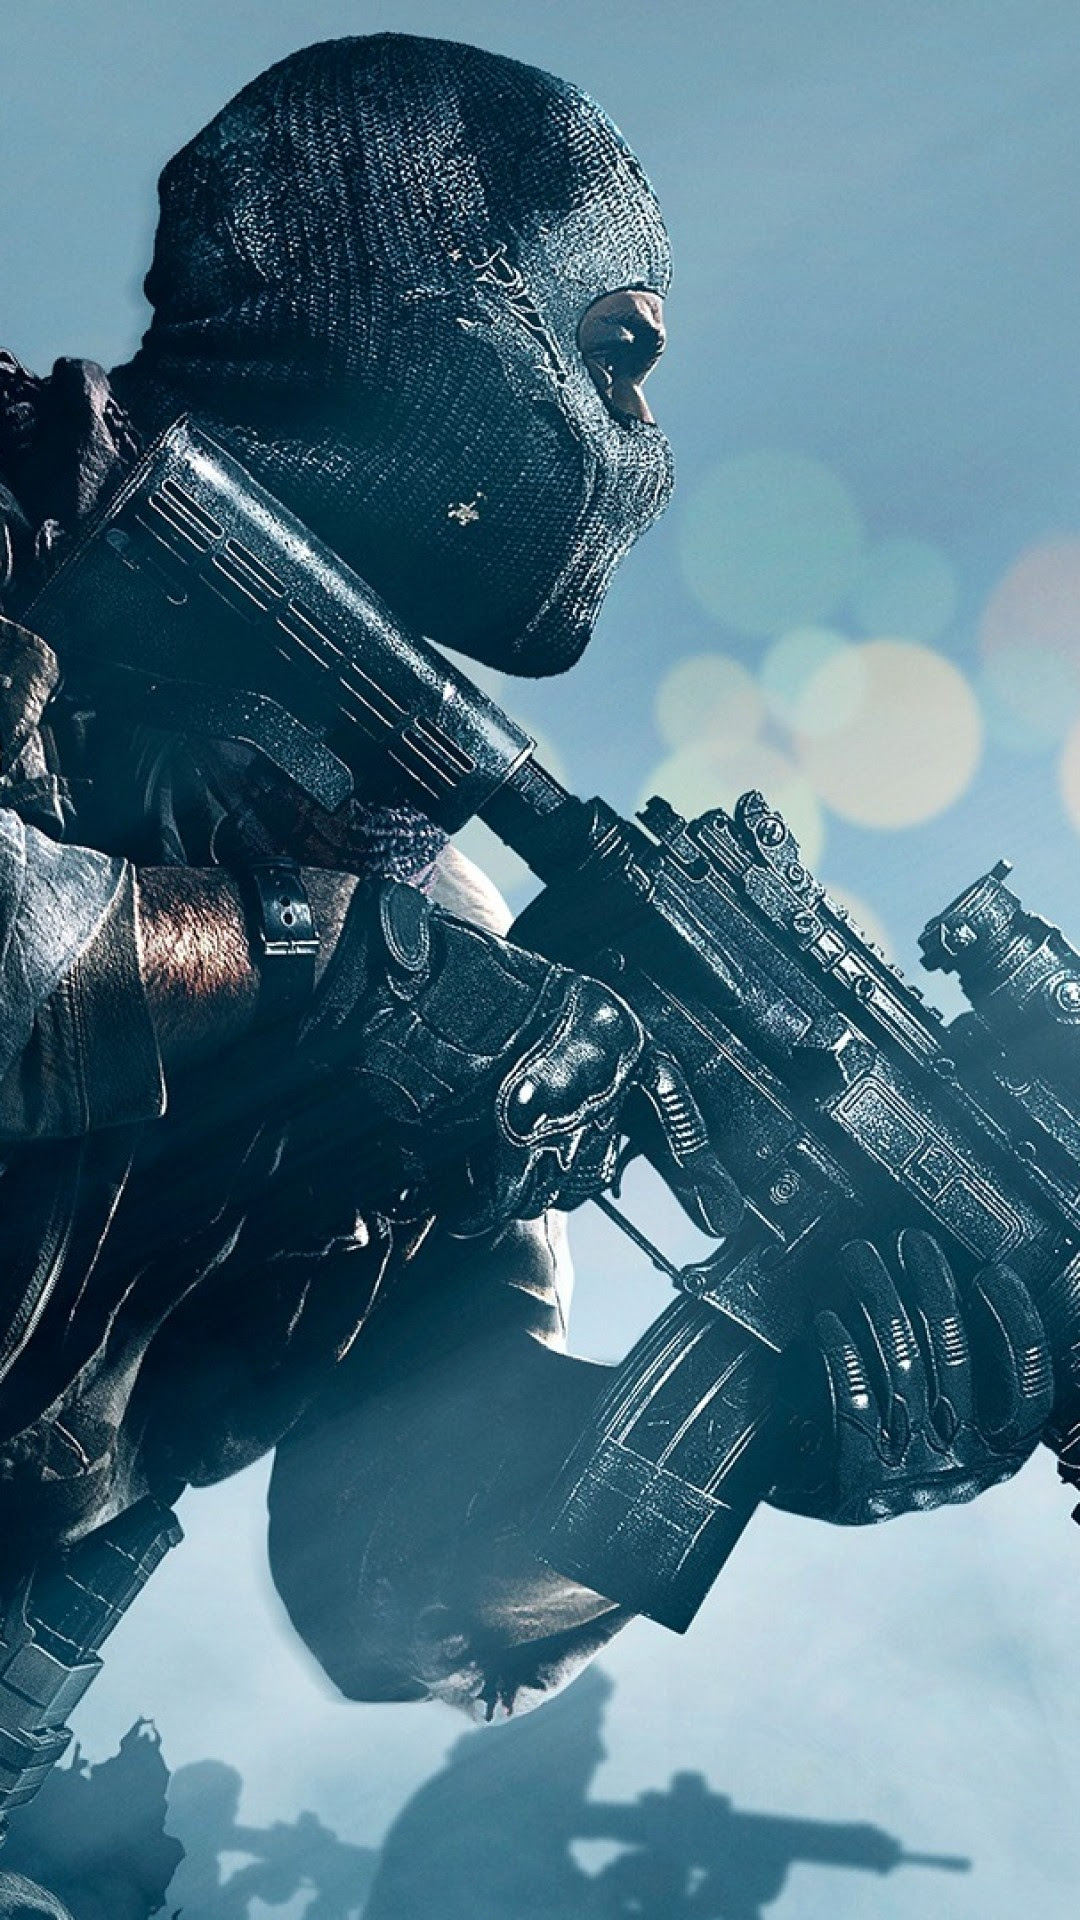 Good Call Of Duty Ghosts Wallpaper For Android Huge Free